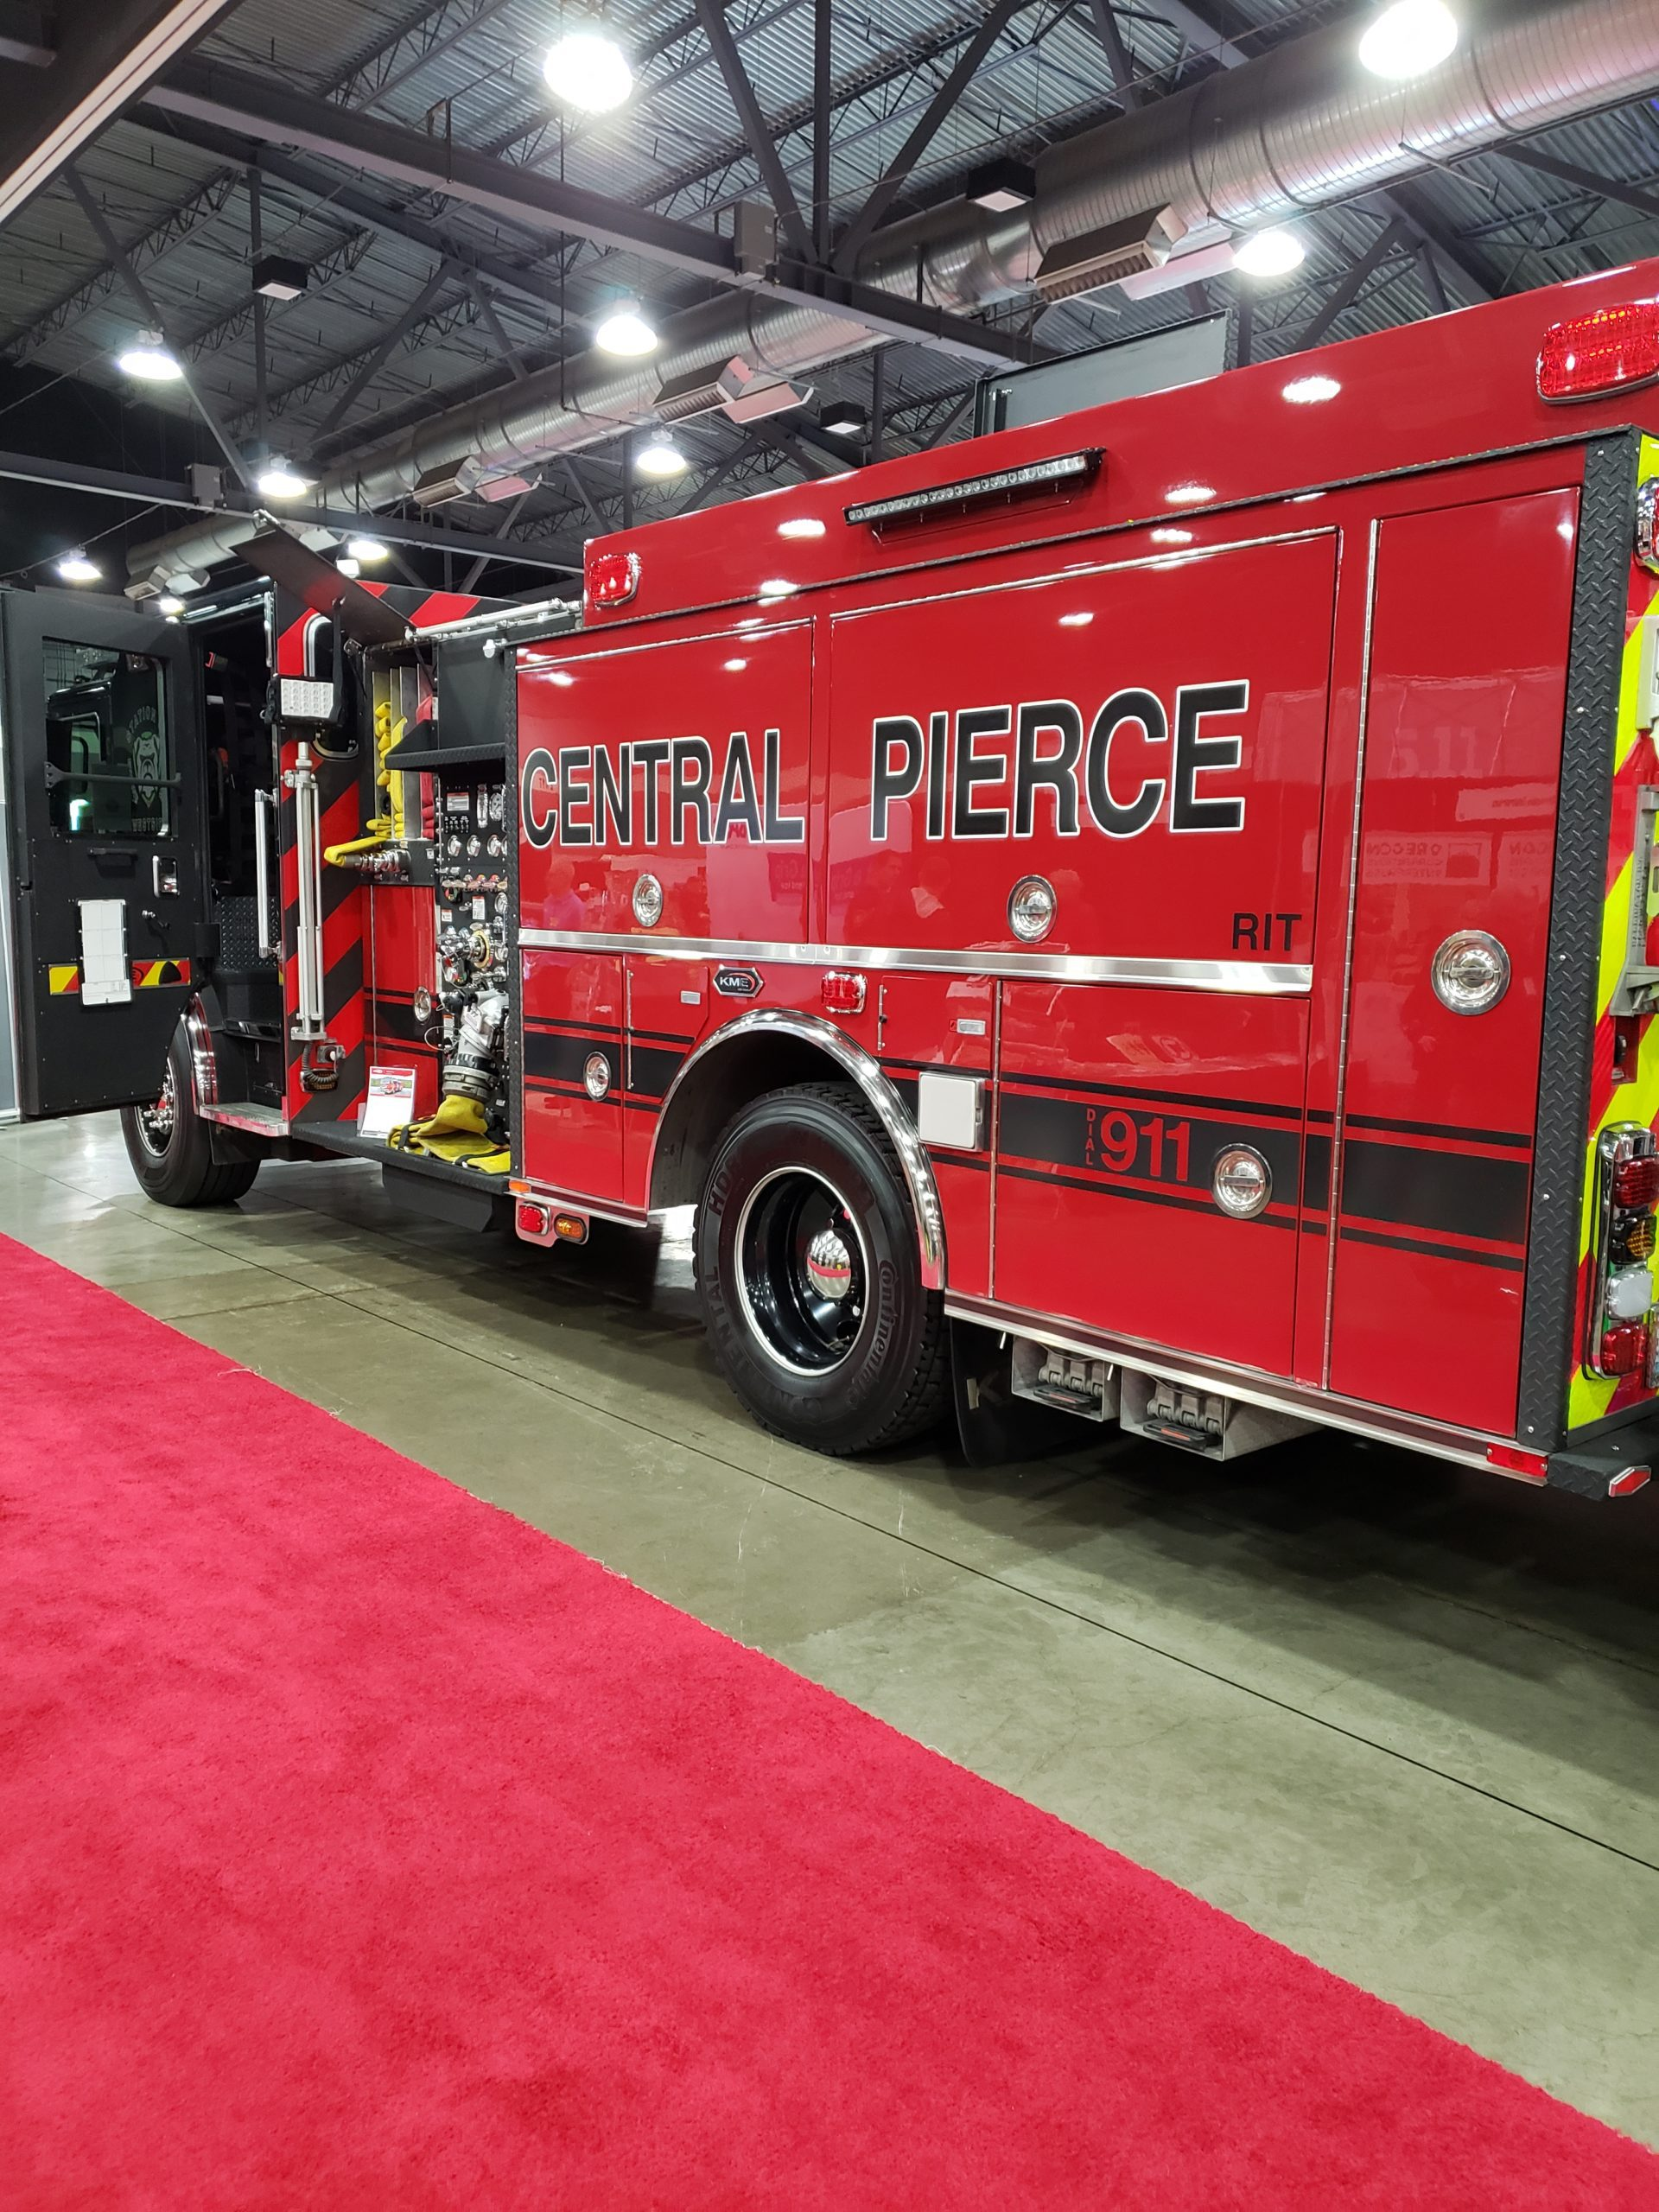 Central Pierce Fire Truck